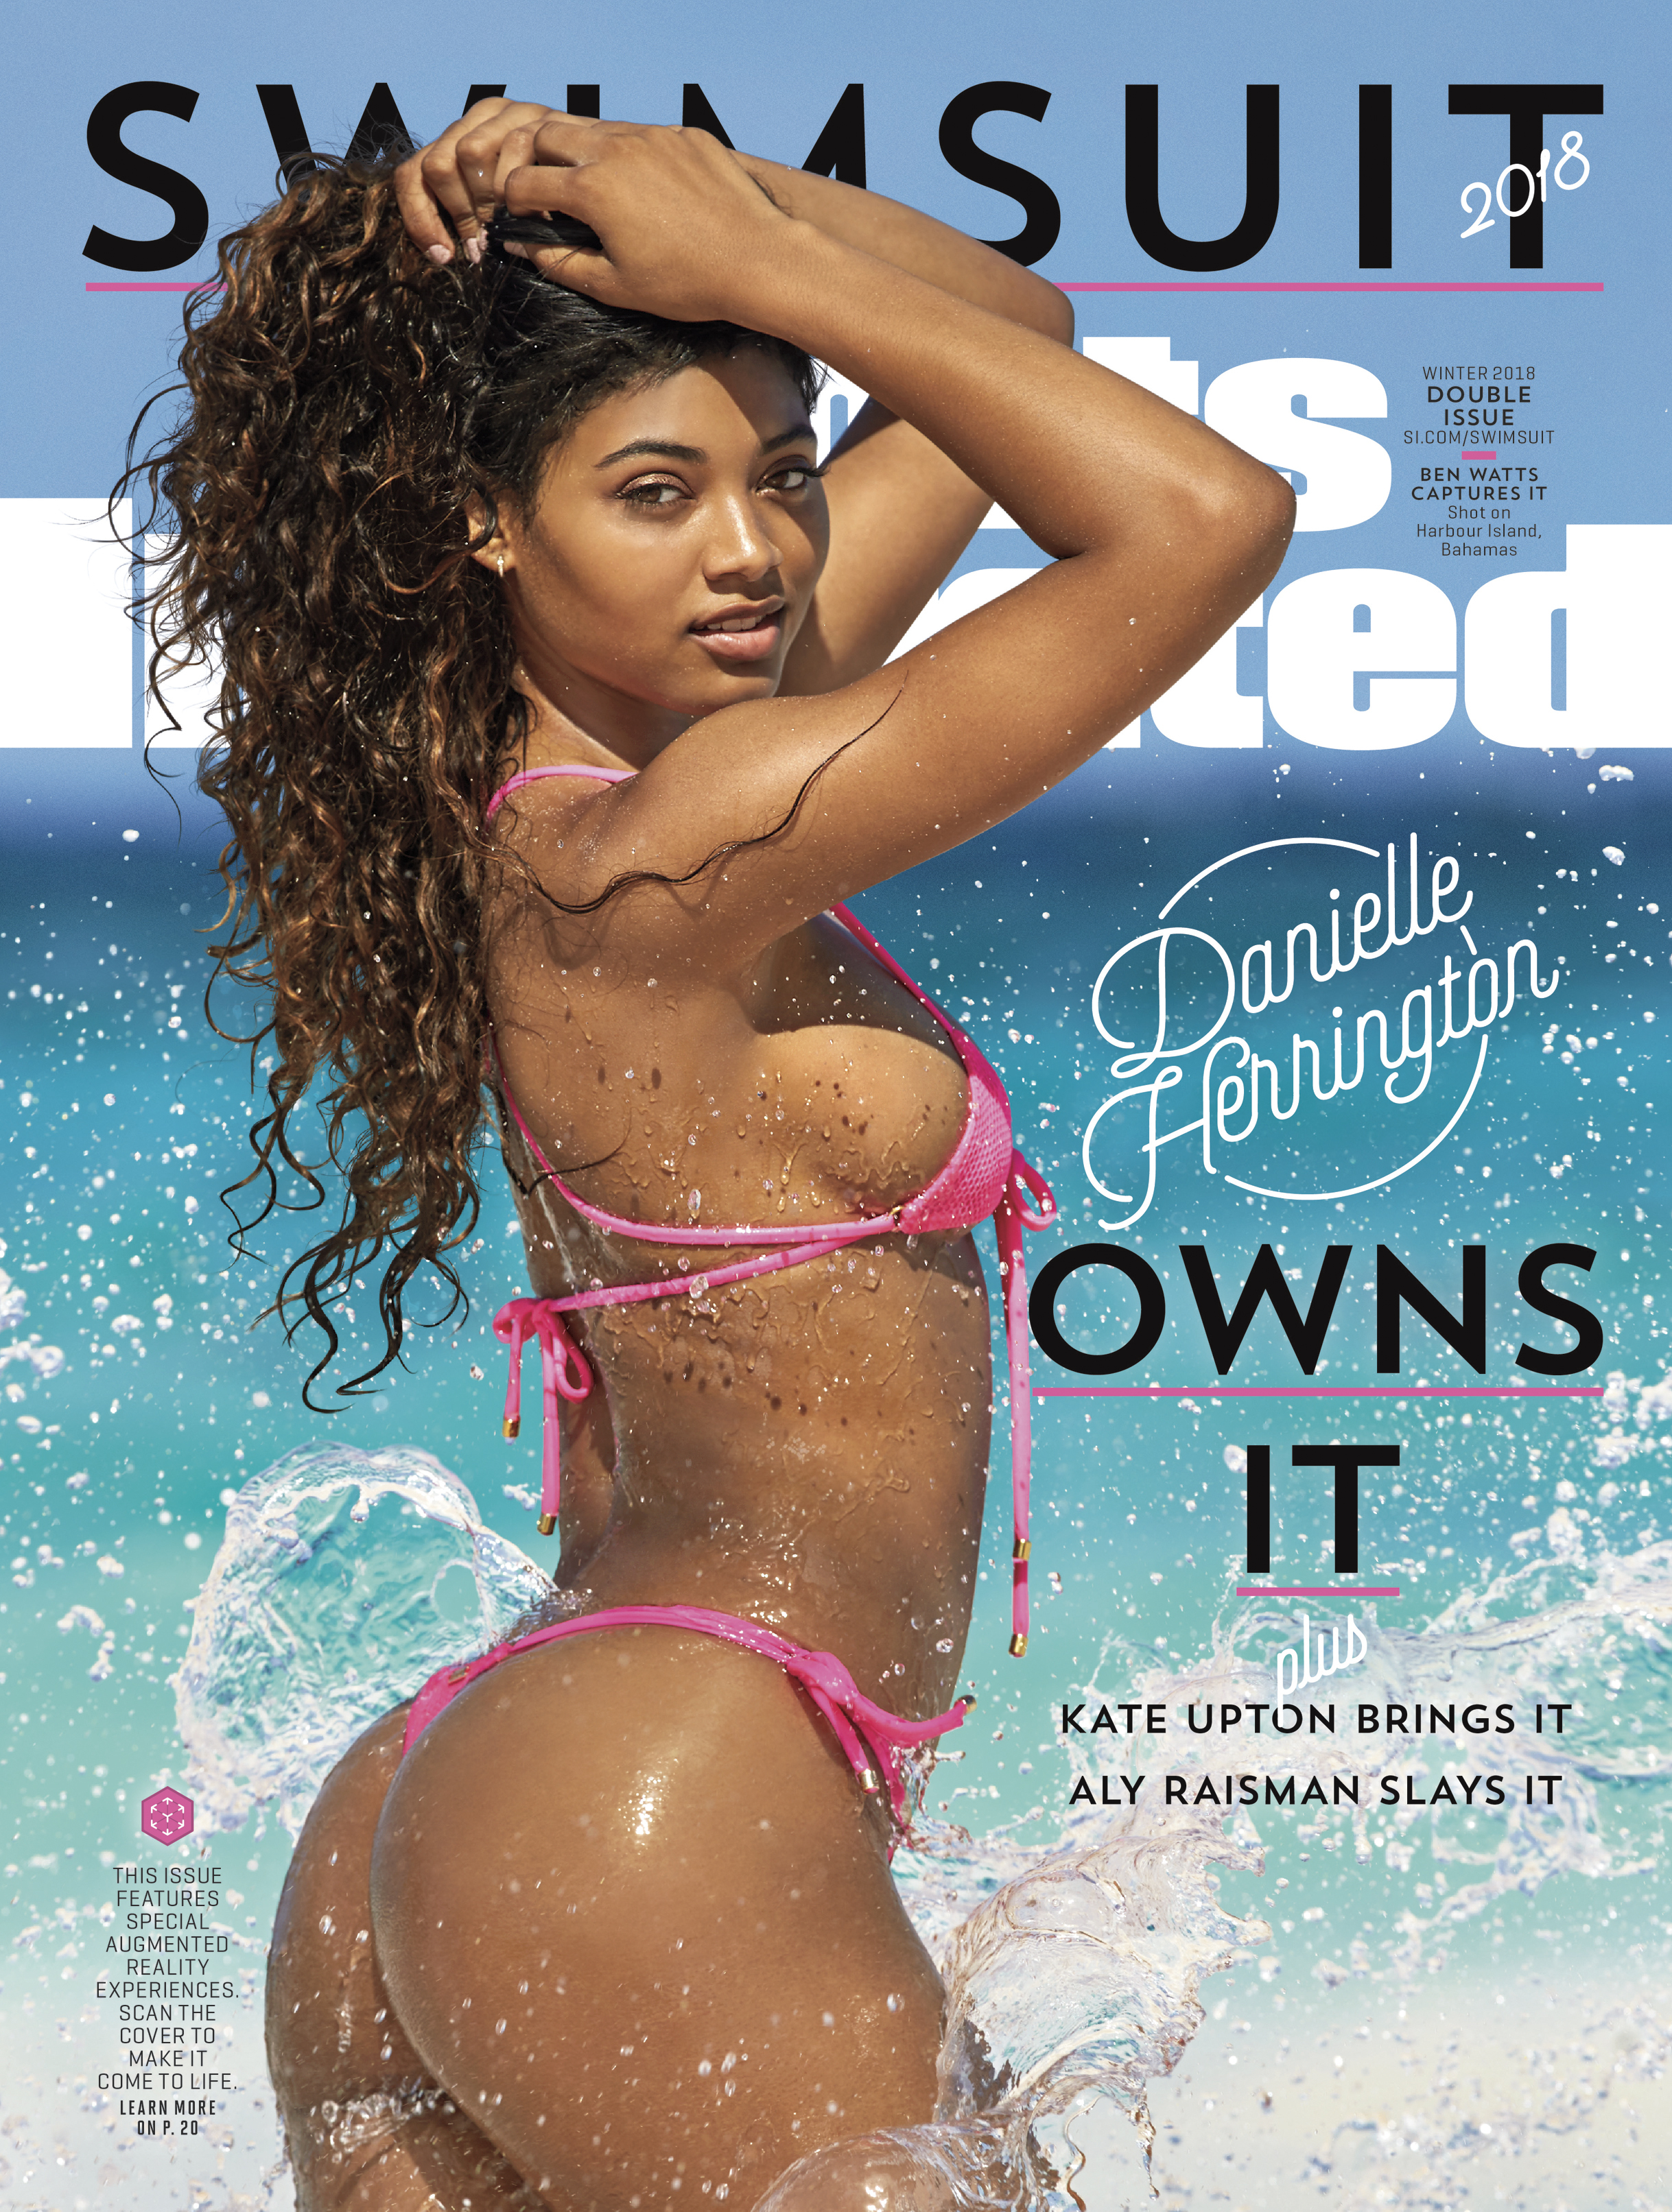 """Allie Ayers Nude danielle herrington """"owns it"""" as the 2018 sports illustrated"""